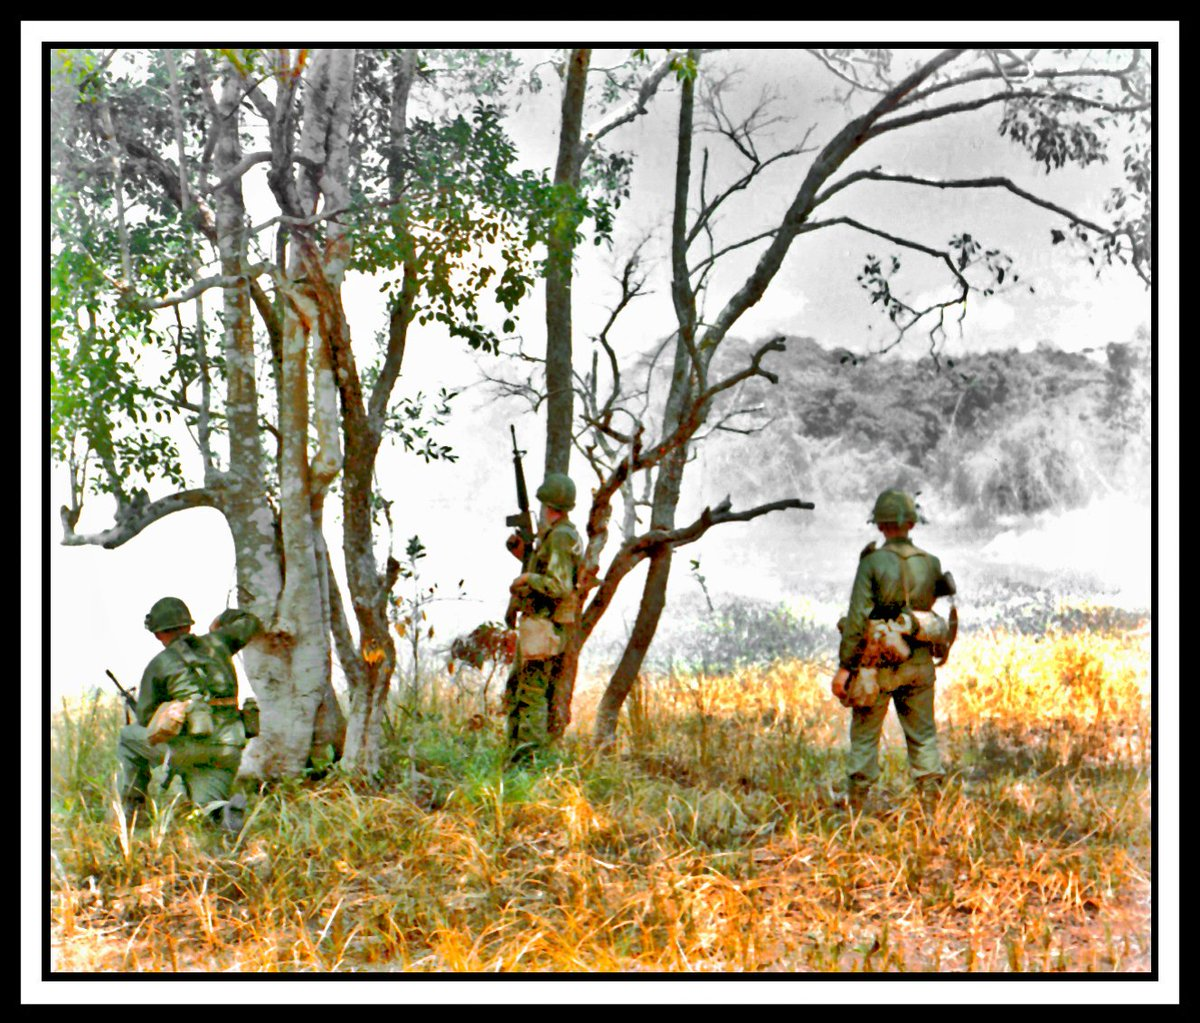 Soldiers from the 1st Cavalry Division wait for a helicopter extraction, 6 July 66. Photo by Sp4 Robert C. Lafoon DASPO via NARA. Enhancement by erikthehistorian (erik villard) #VietnamWar<br>http://pic.twitter.com/LND5C2ZqiC